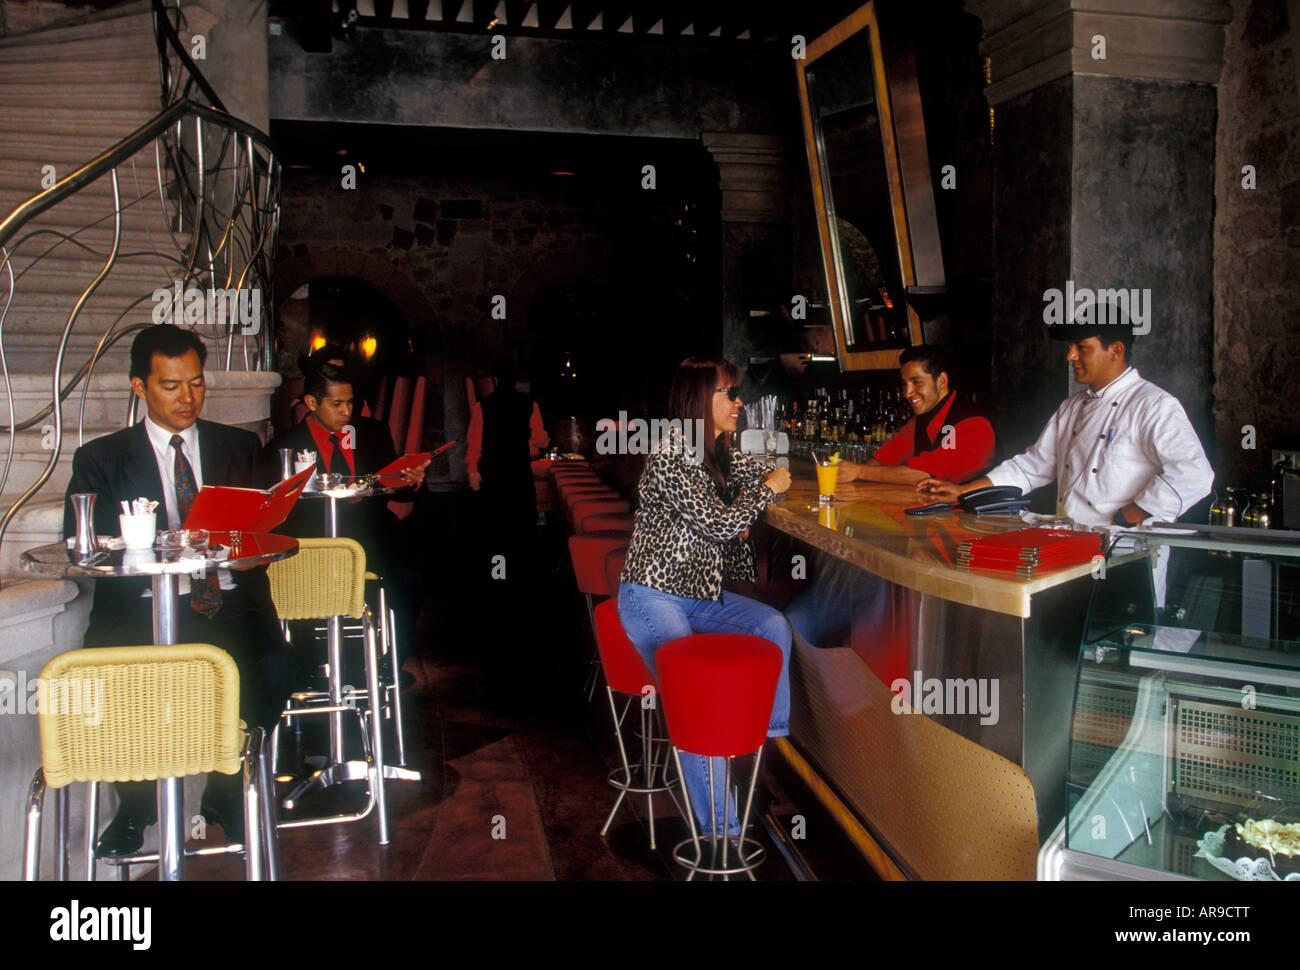 Mexicans Mexican People Person Tourists Eating Dining Room At Onix Restaurant Bar Morelia Michoacan State Mexico North America